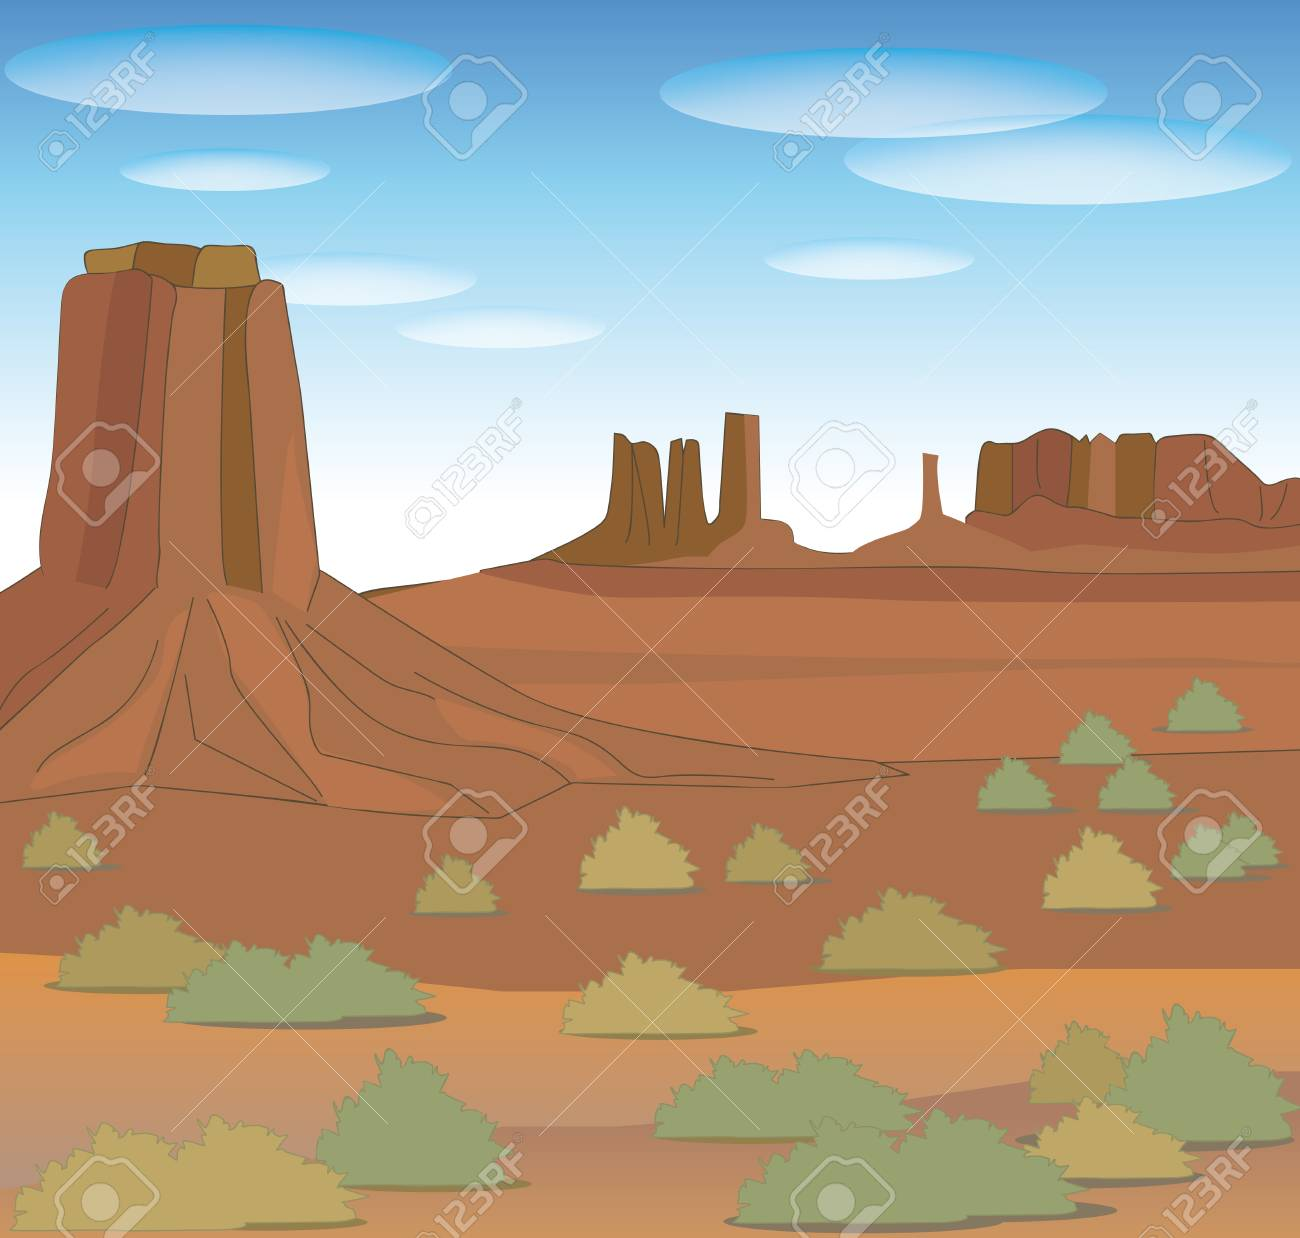 Monument valley-Nature image of North America - 115793967